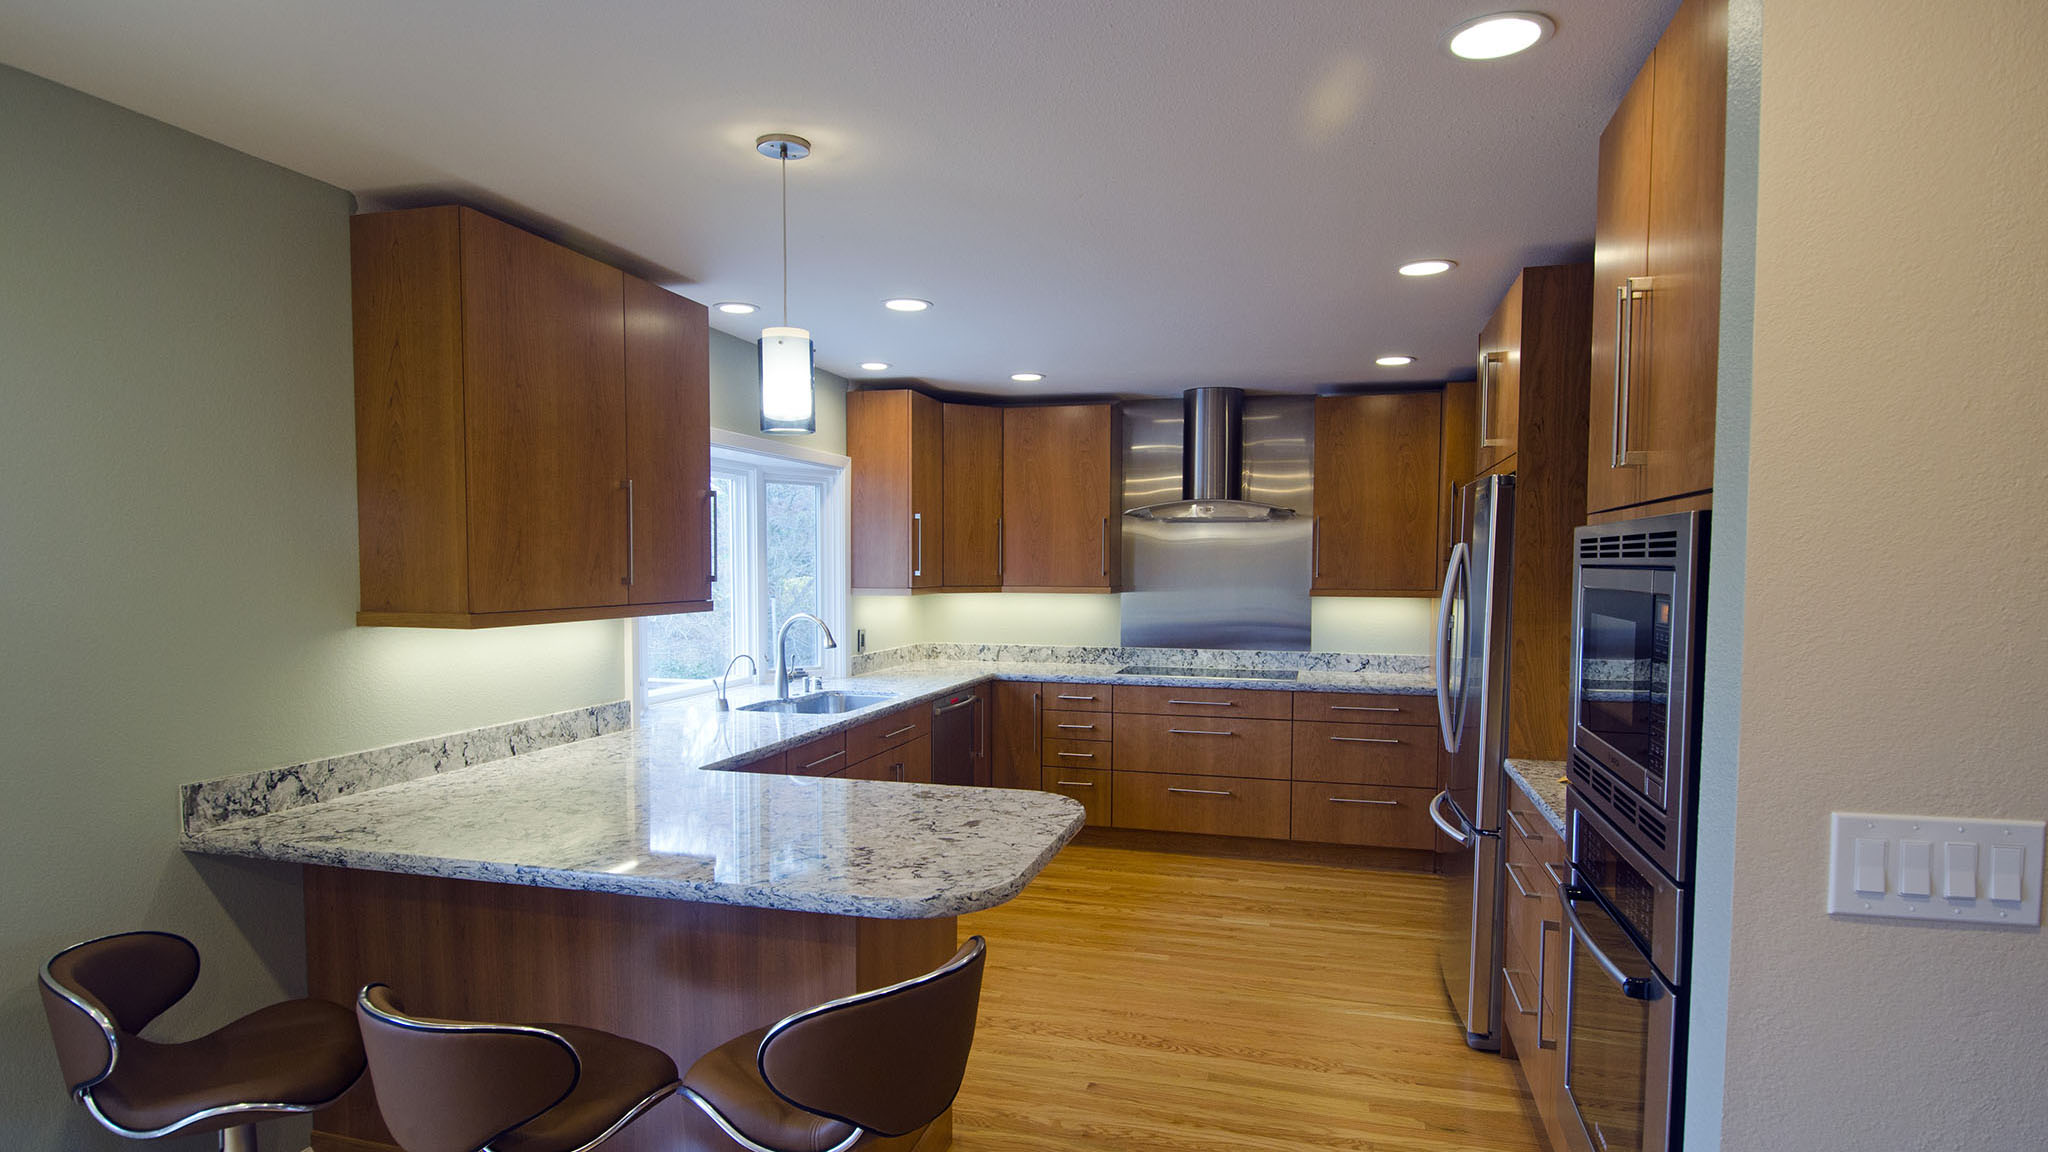 Led Lights For Kitchen How To Improve Your Home With Led Lighting Tested